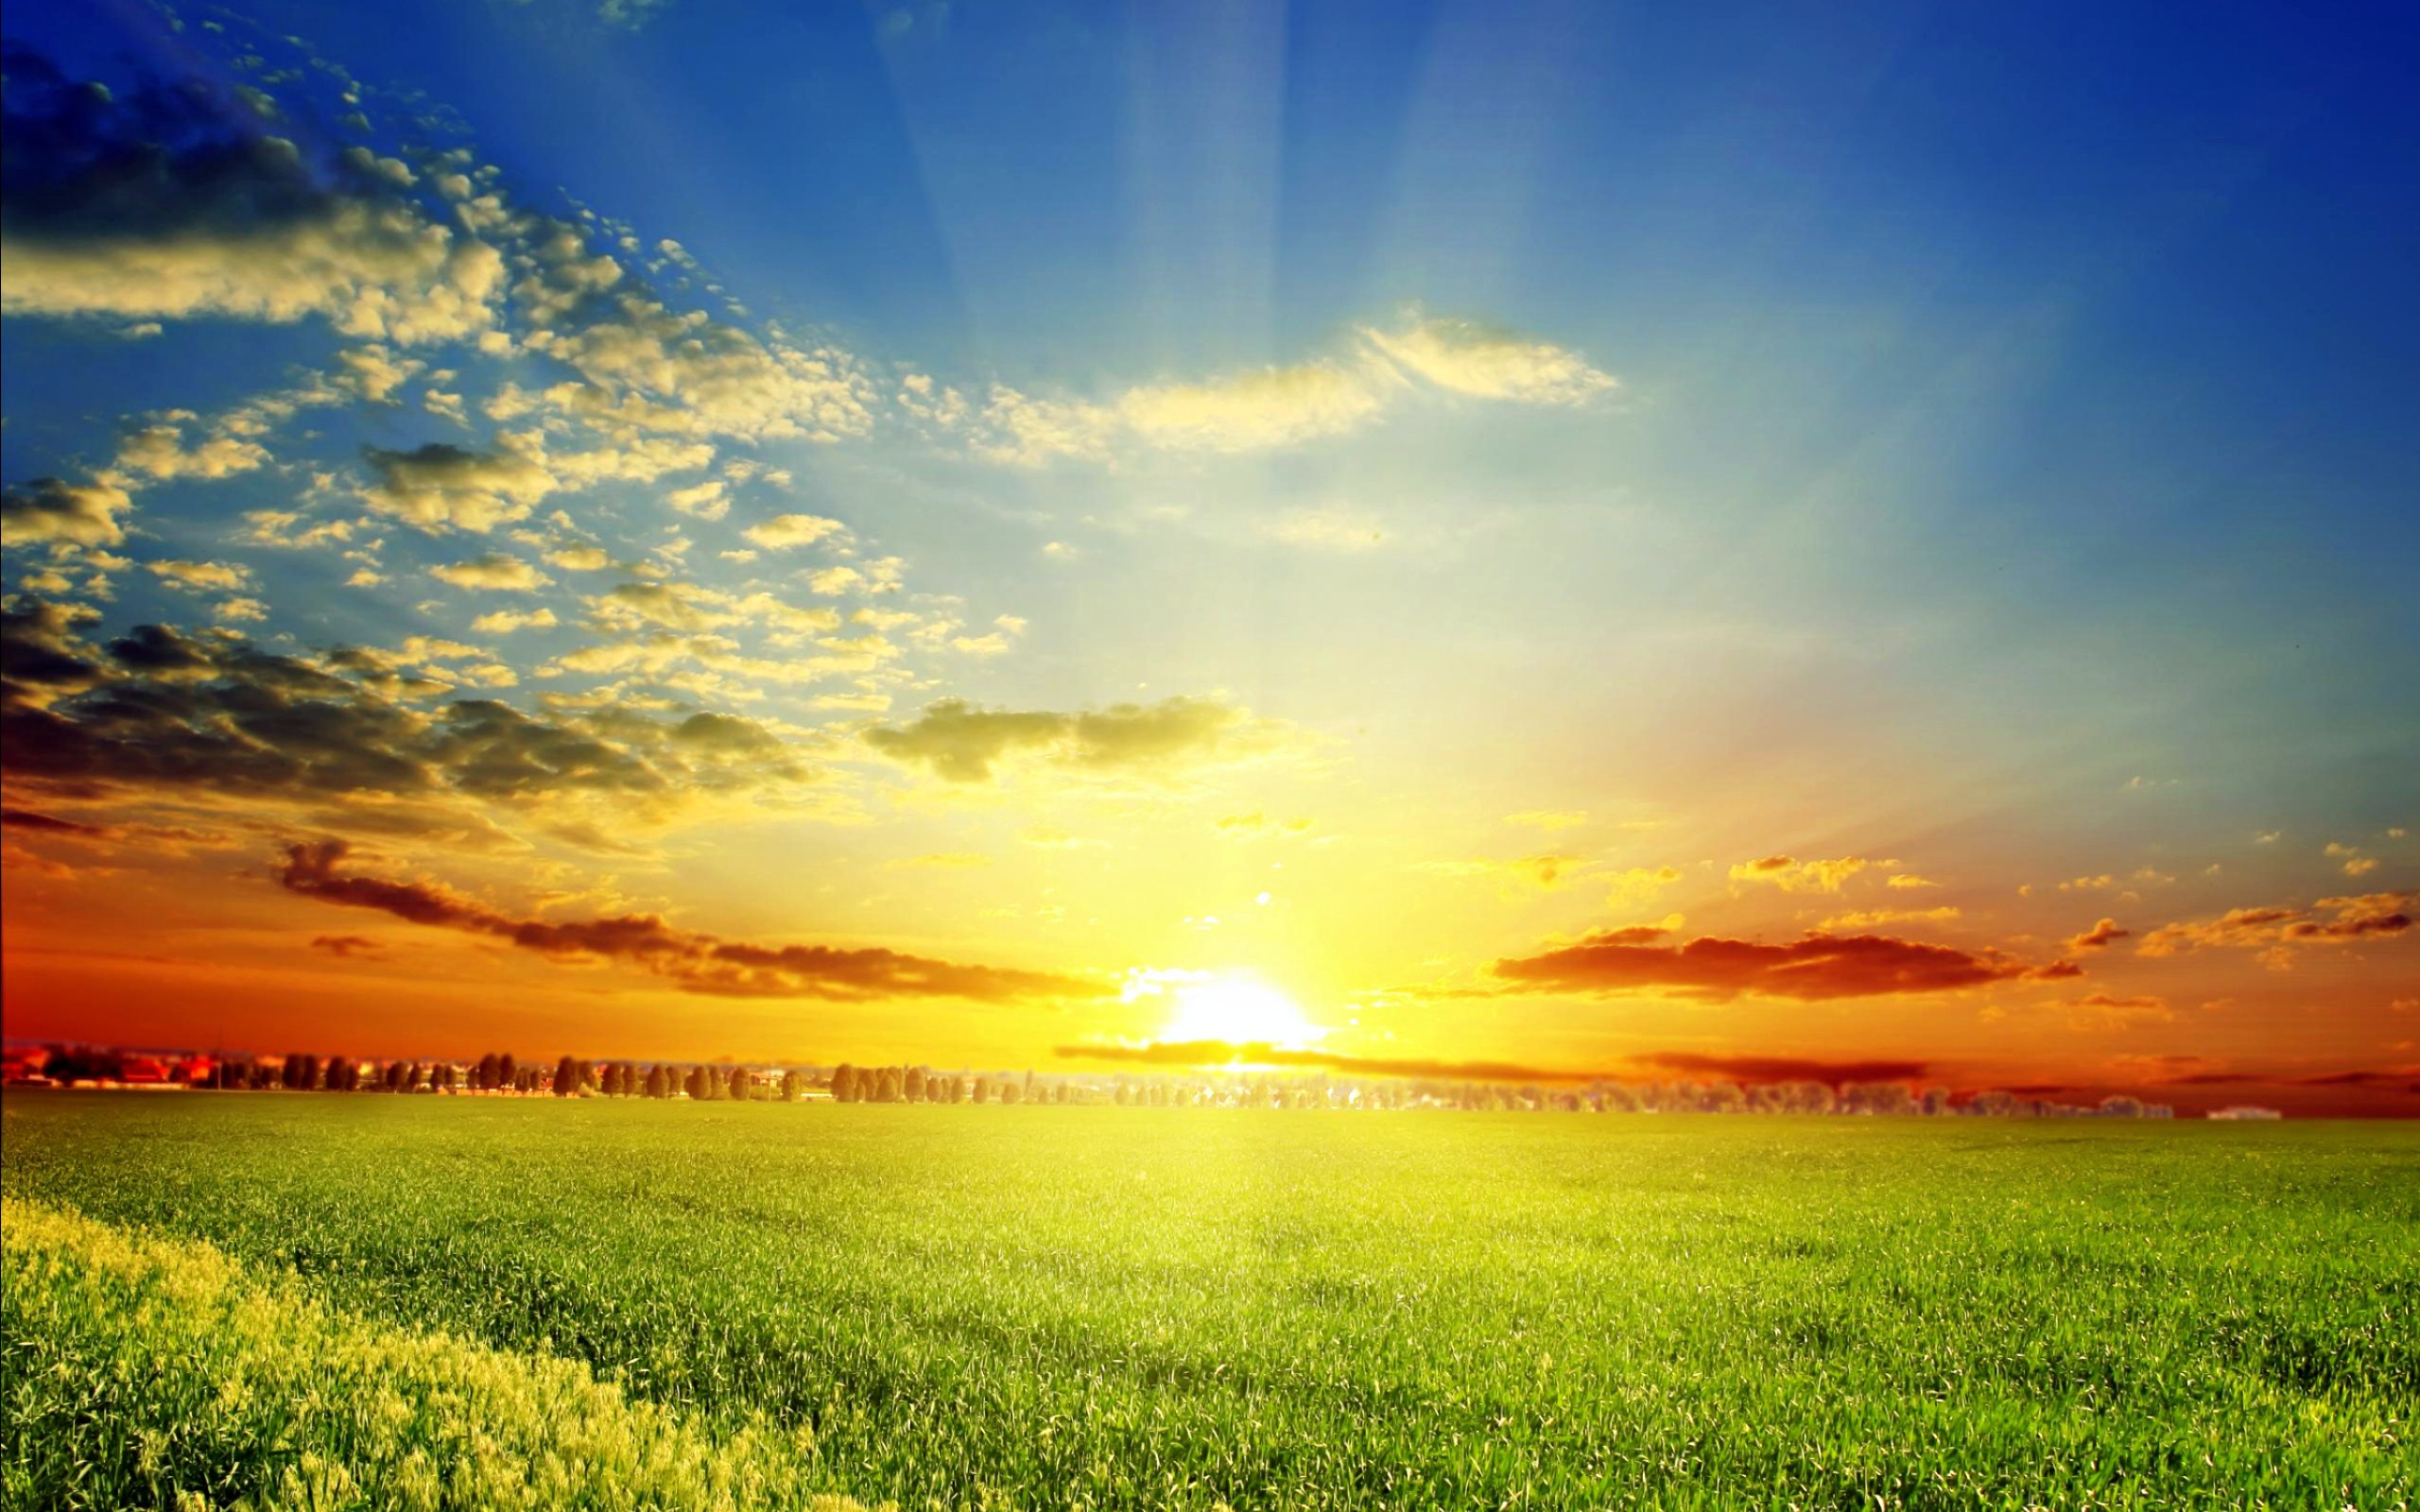 Spring Sun Wallpaper Allwallpaperin 11926 Pc En